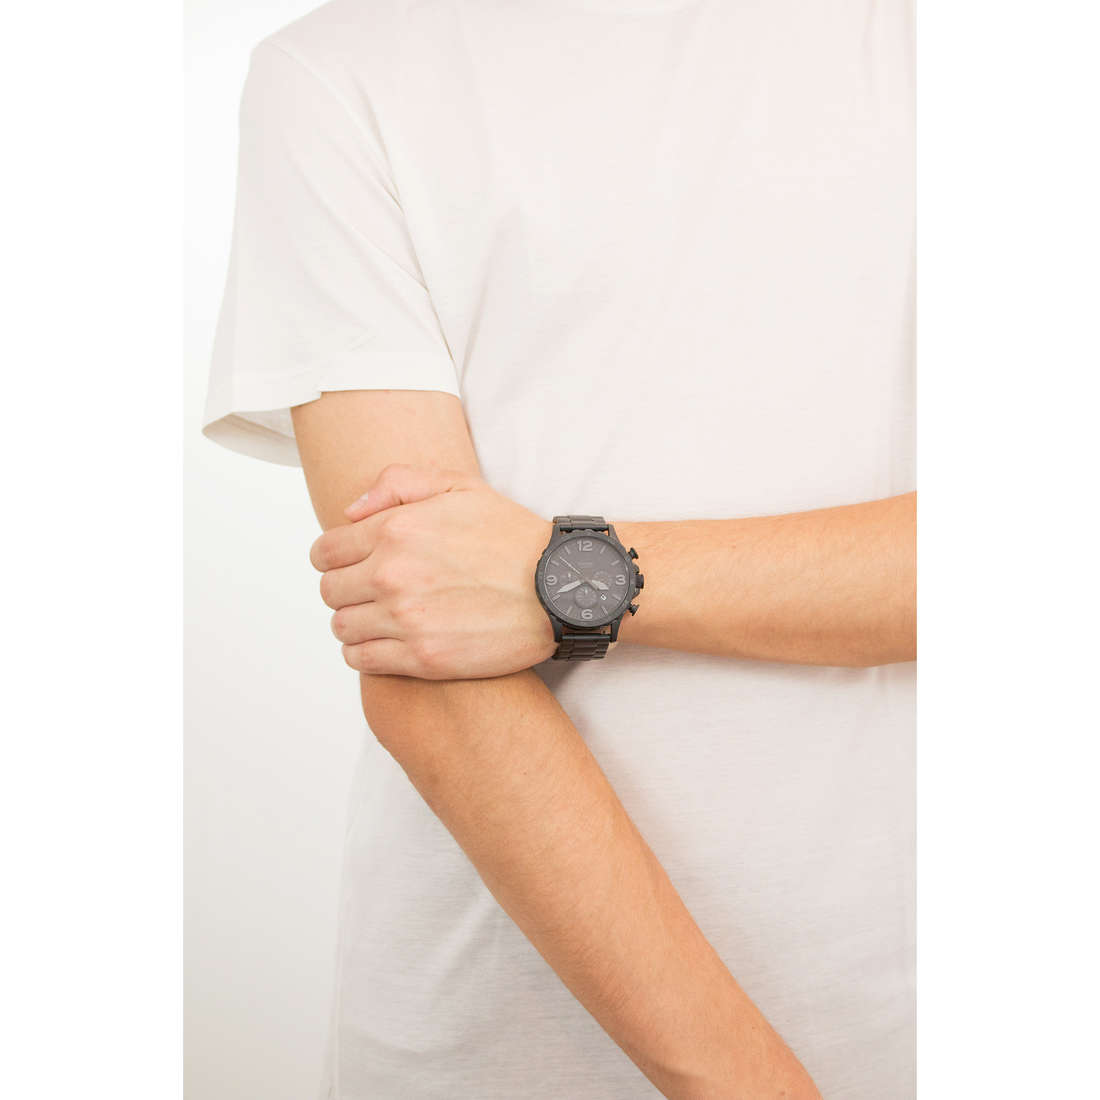 Fossil chronographes homme JR1401 indosso